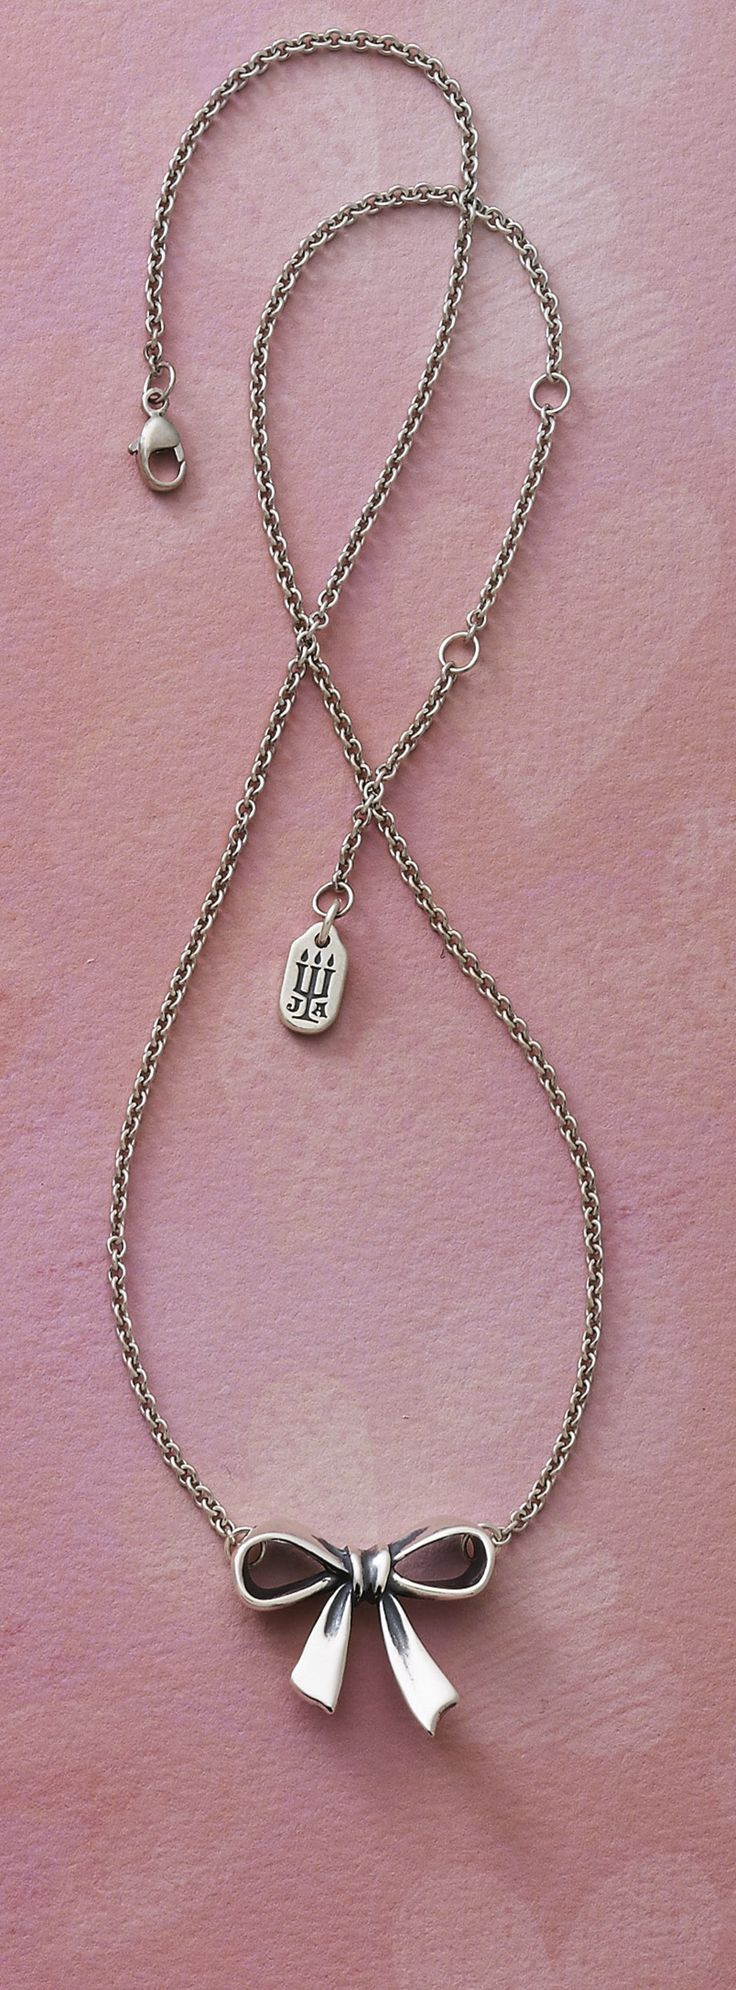 Bow Necklace #JamesAvery #Bows #BowNecklace